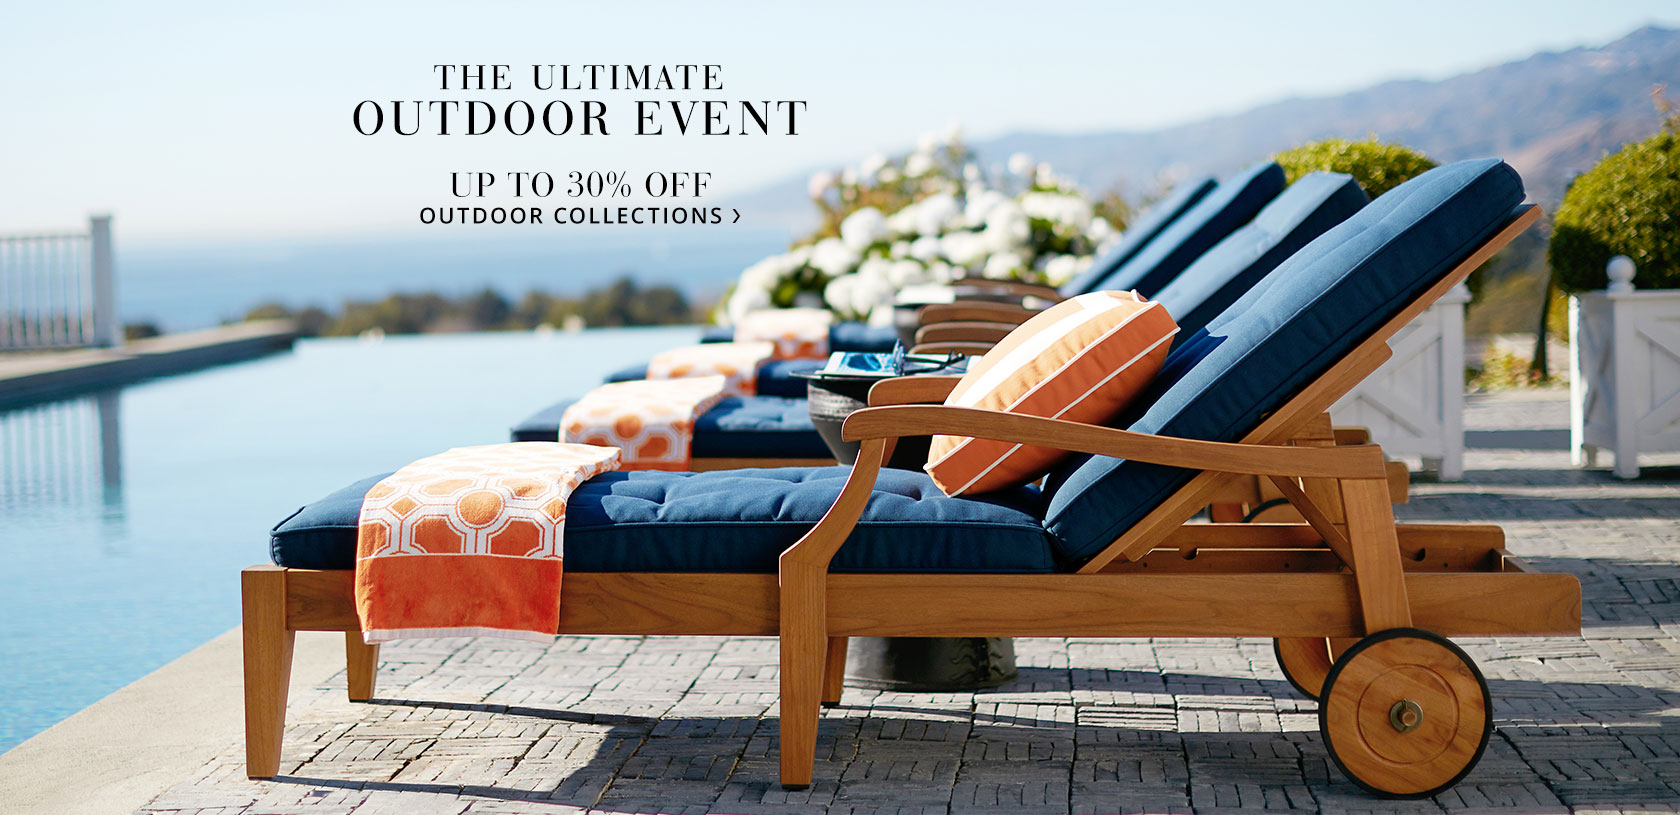 Pottery Barn - 30% off Outdoor Furniture